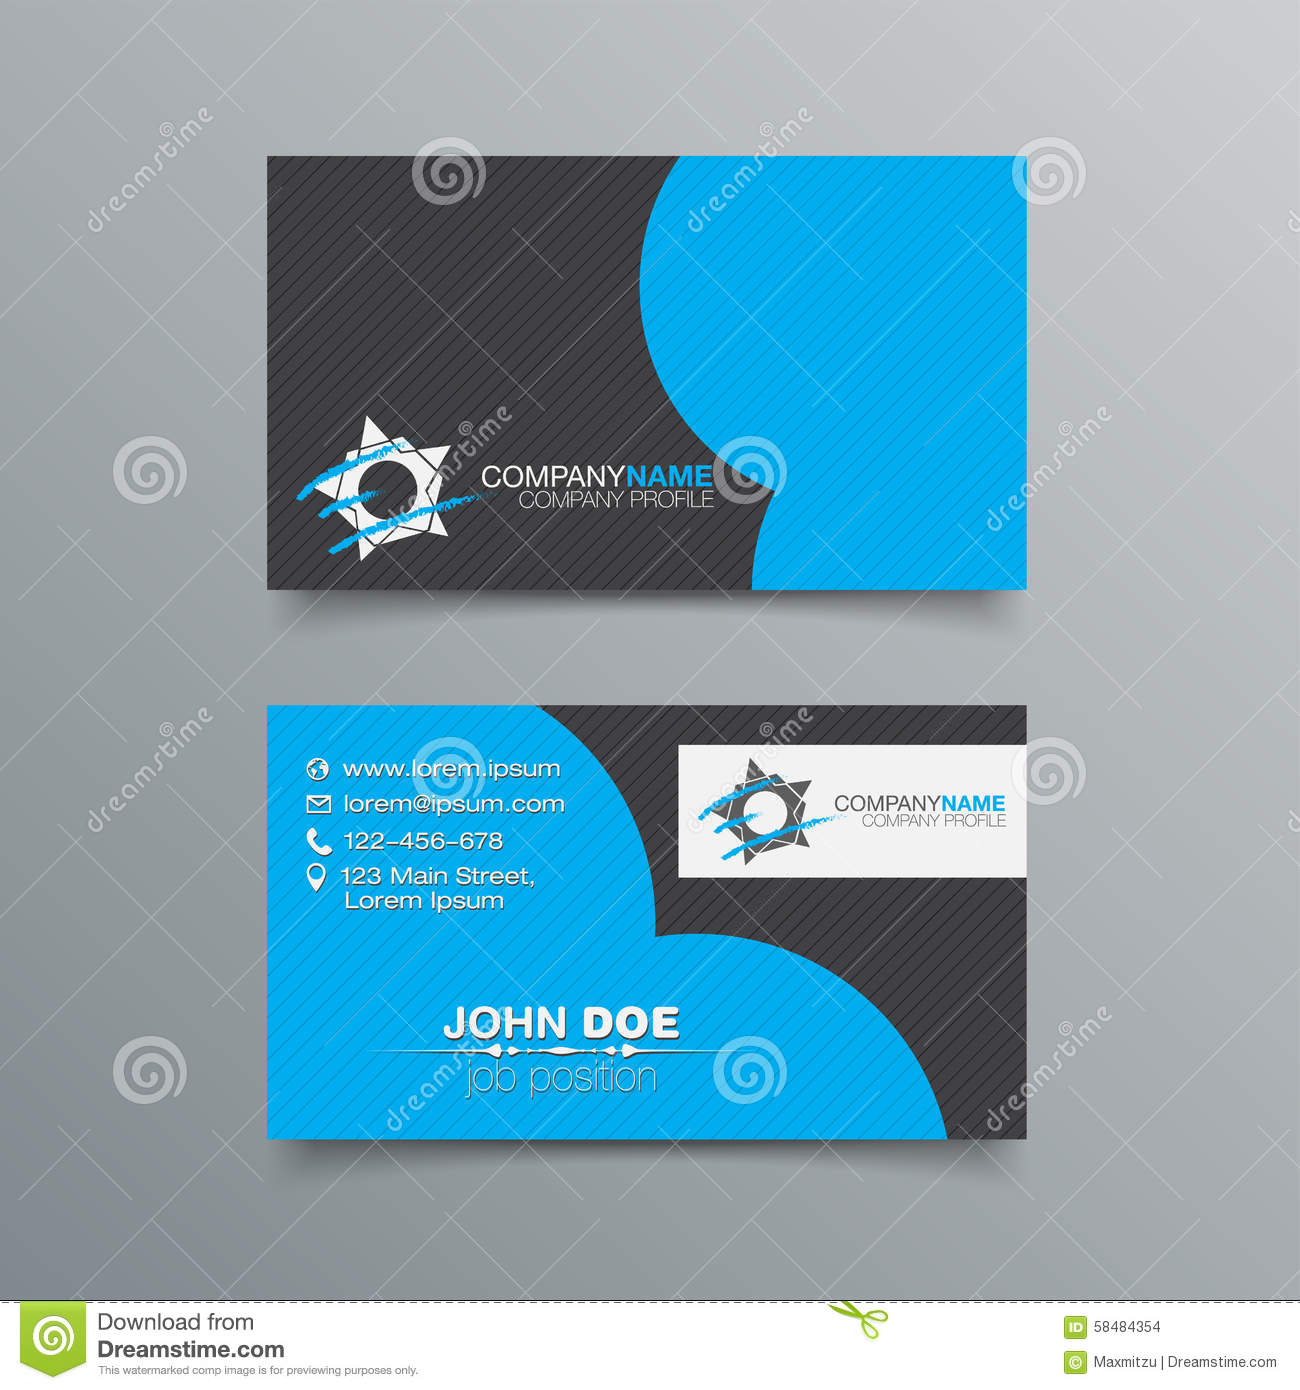 Business card background design stock illustration image for Business card background vector